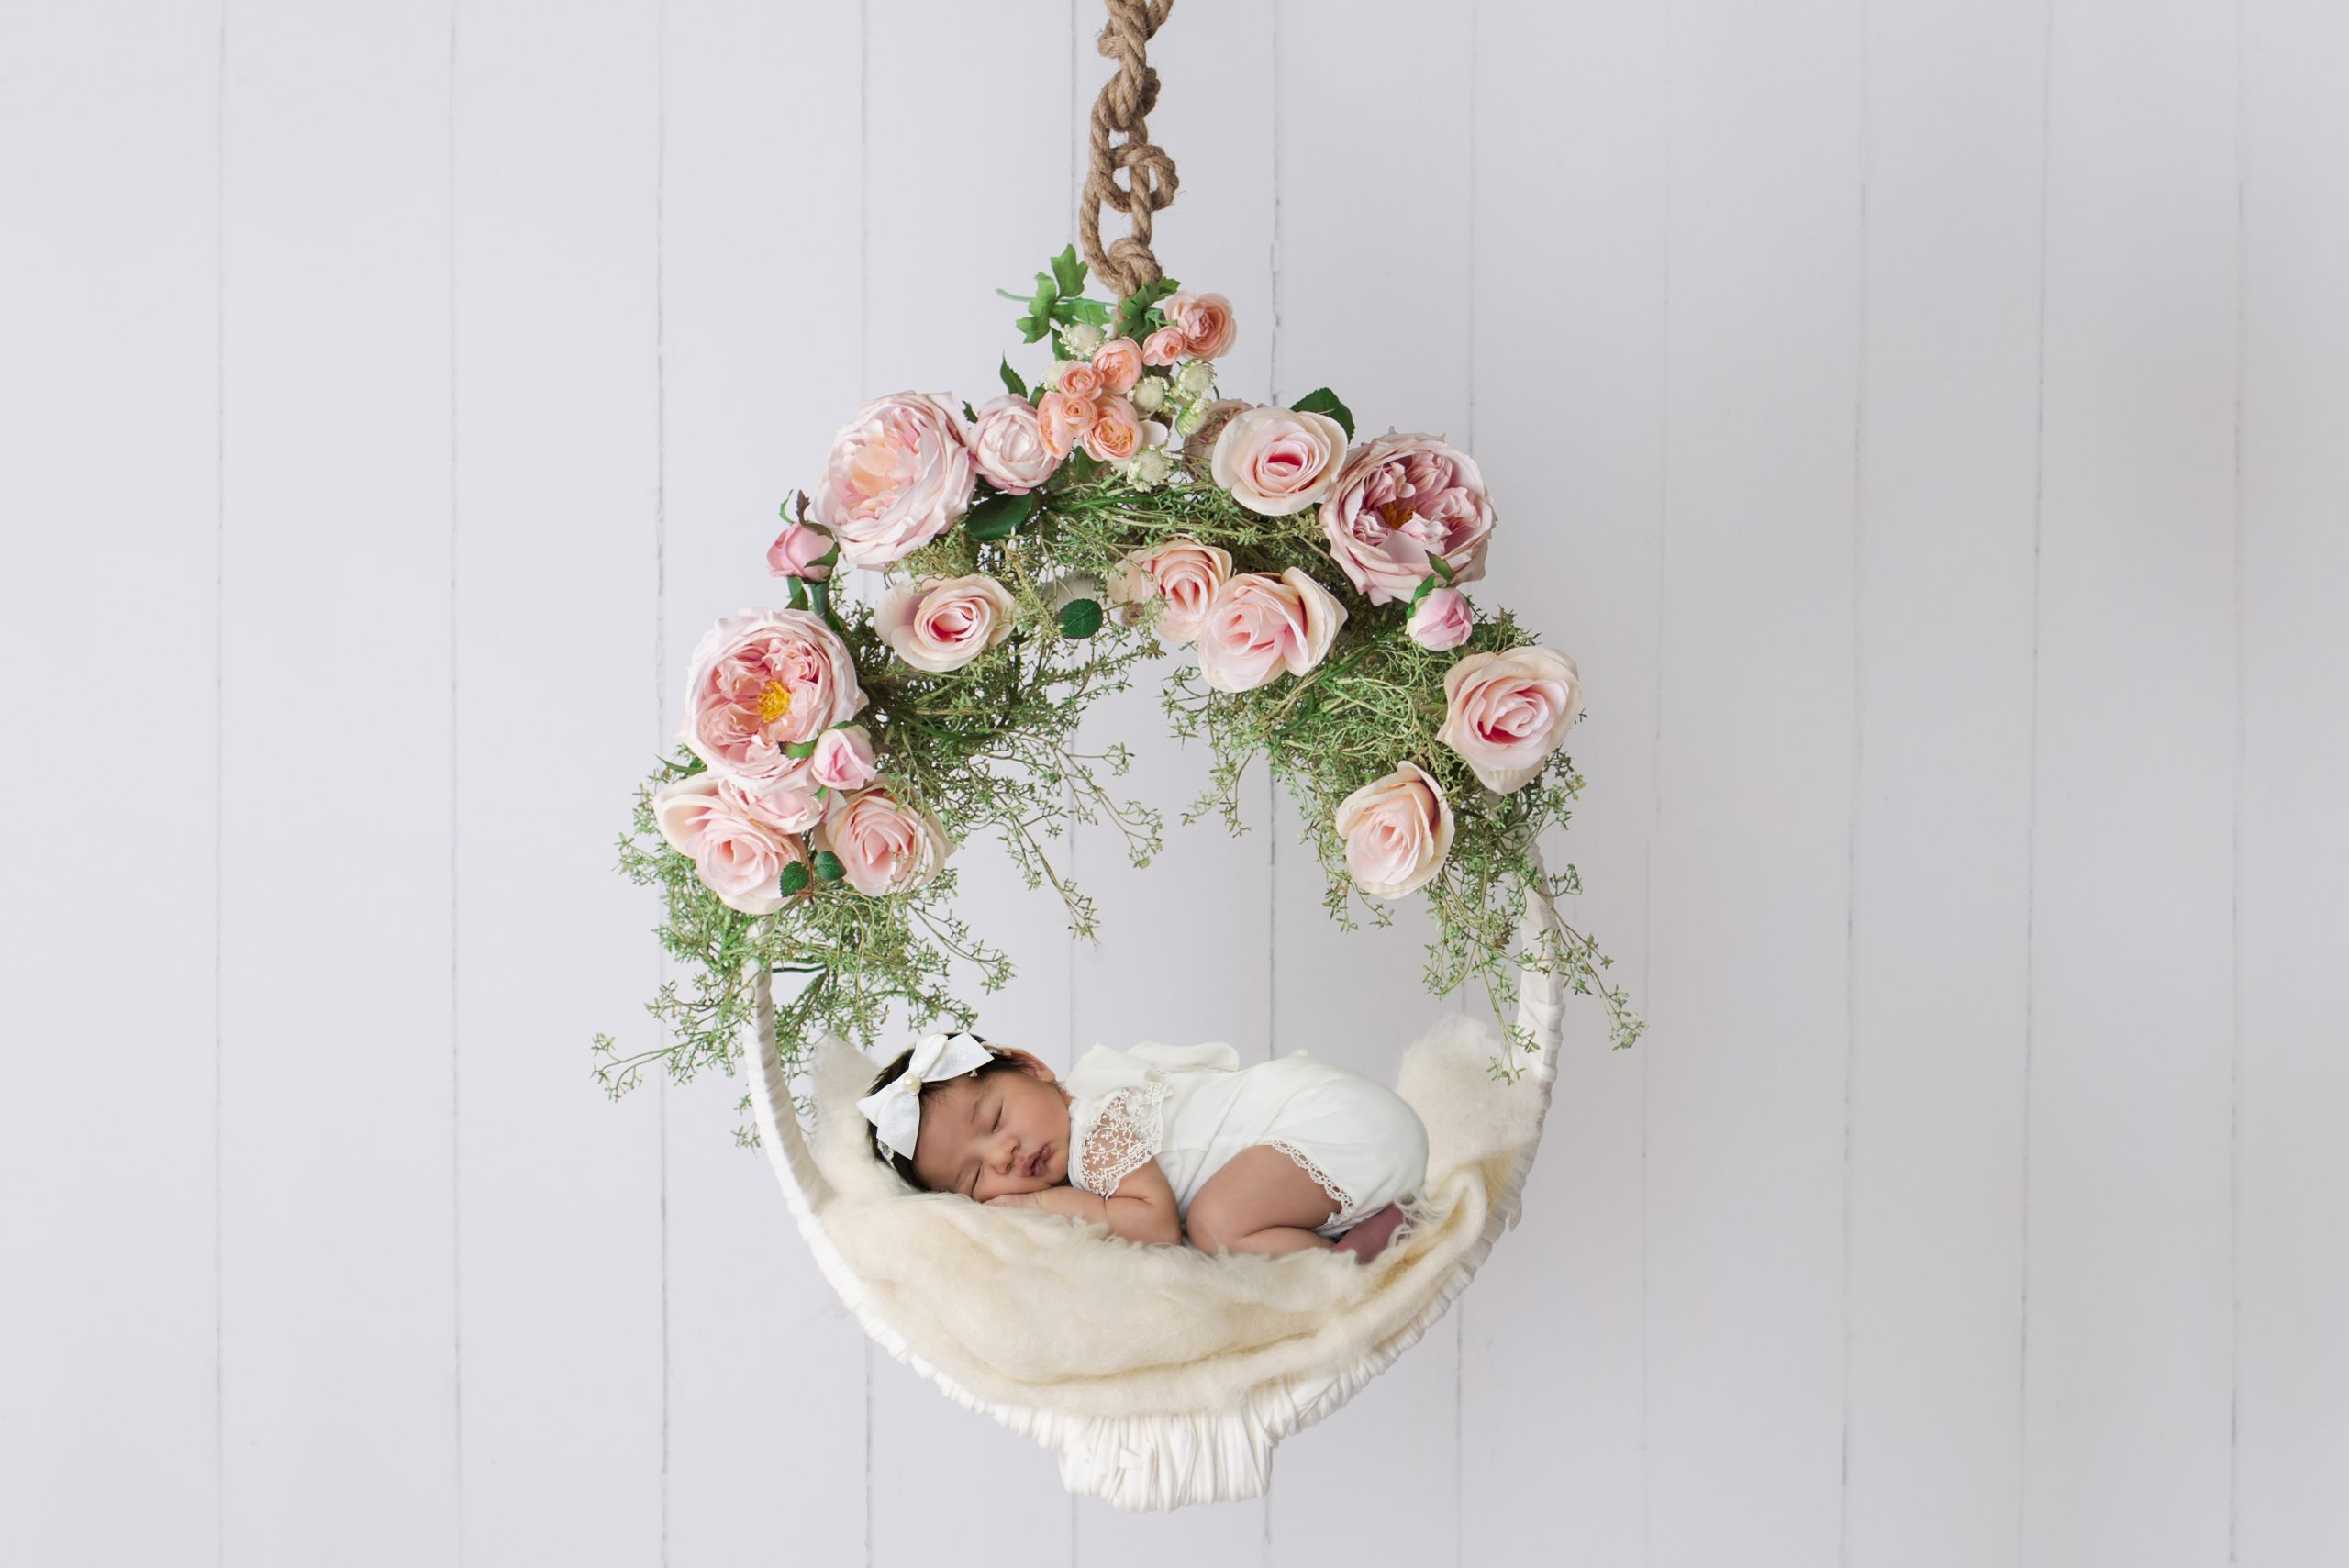 Baby sleeping in the swing decorated with roses